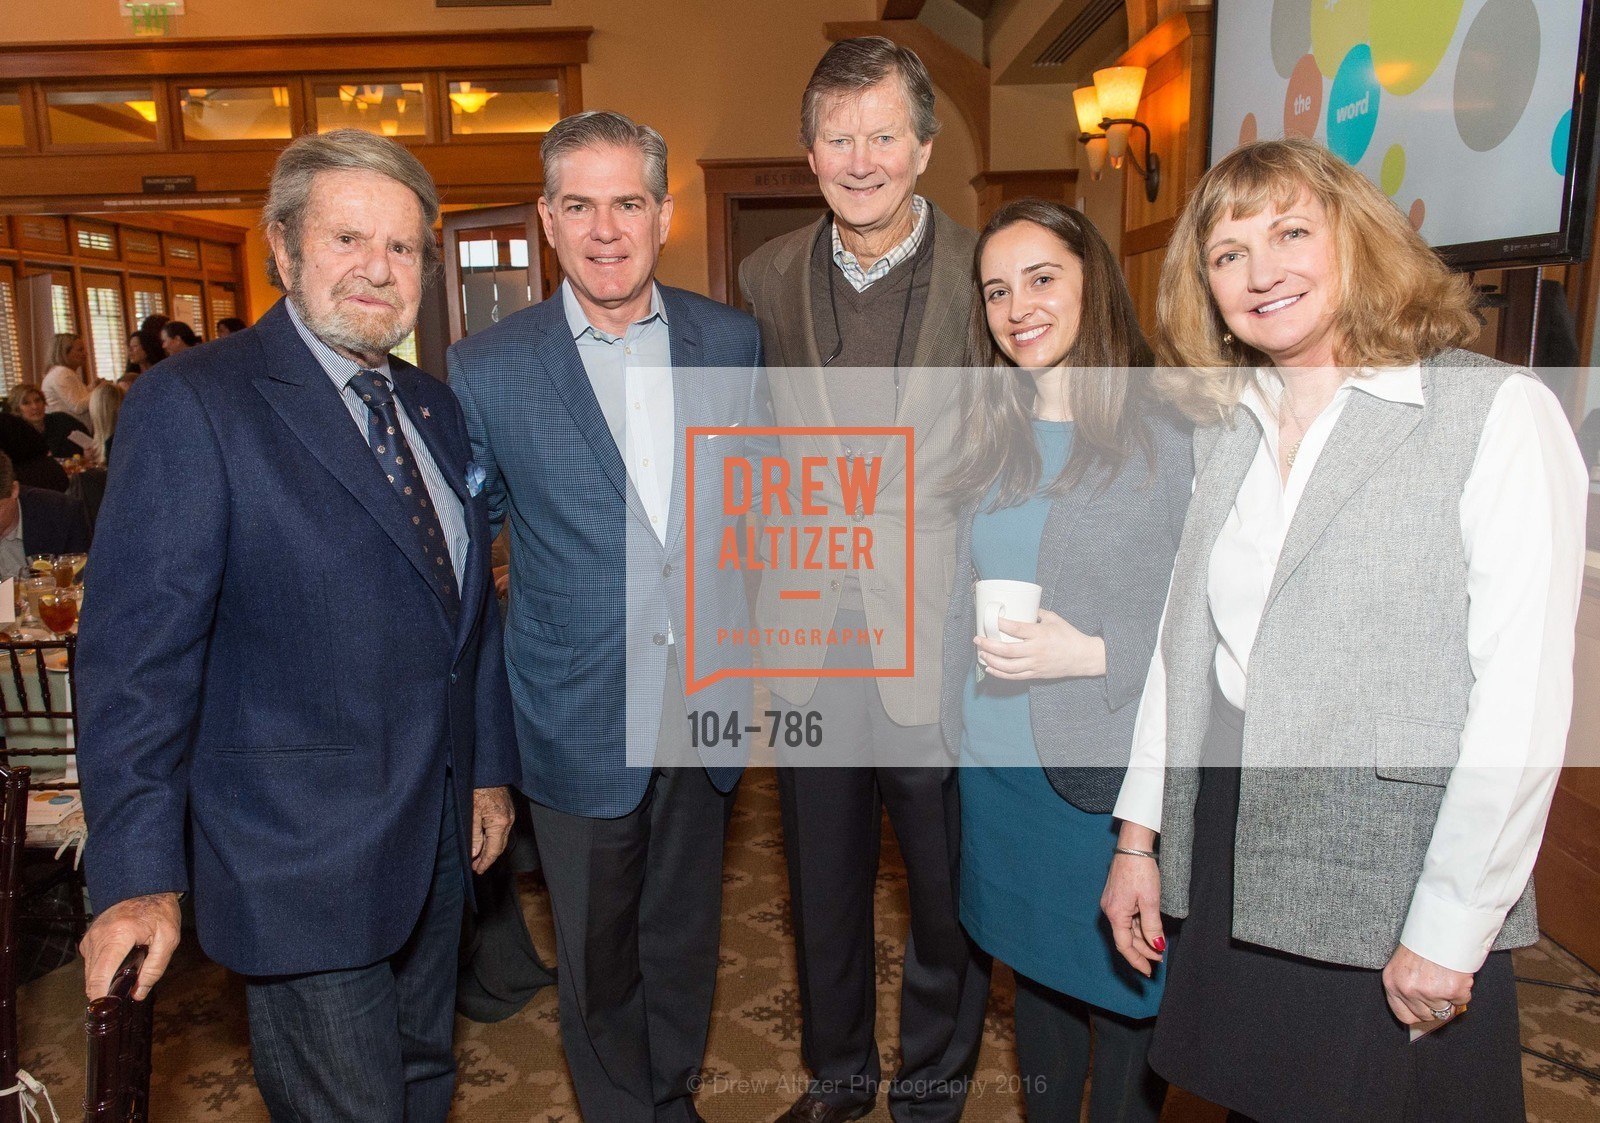 Tad Taube, Robert Keller, John Kriewall, Mary Katherine Flanigan, Betsy Hale, The Children's Health Council Breakfast, Sharon Height Golf and Country Club. 900 Sand Hill Rd, February 2nd, 2016,Drew Altizer, Drew Altizer Photography, full-service agency, private events, San Francisco photographer, photographer california